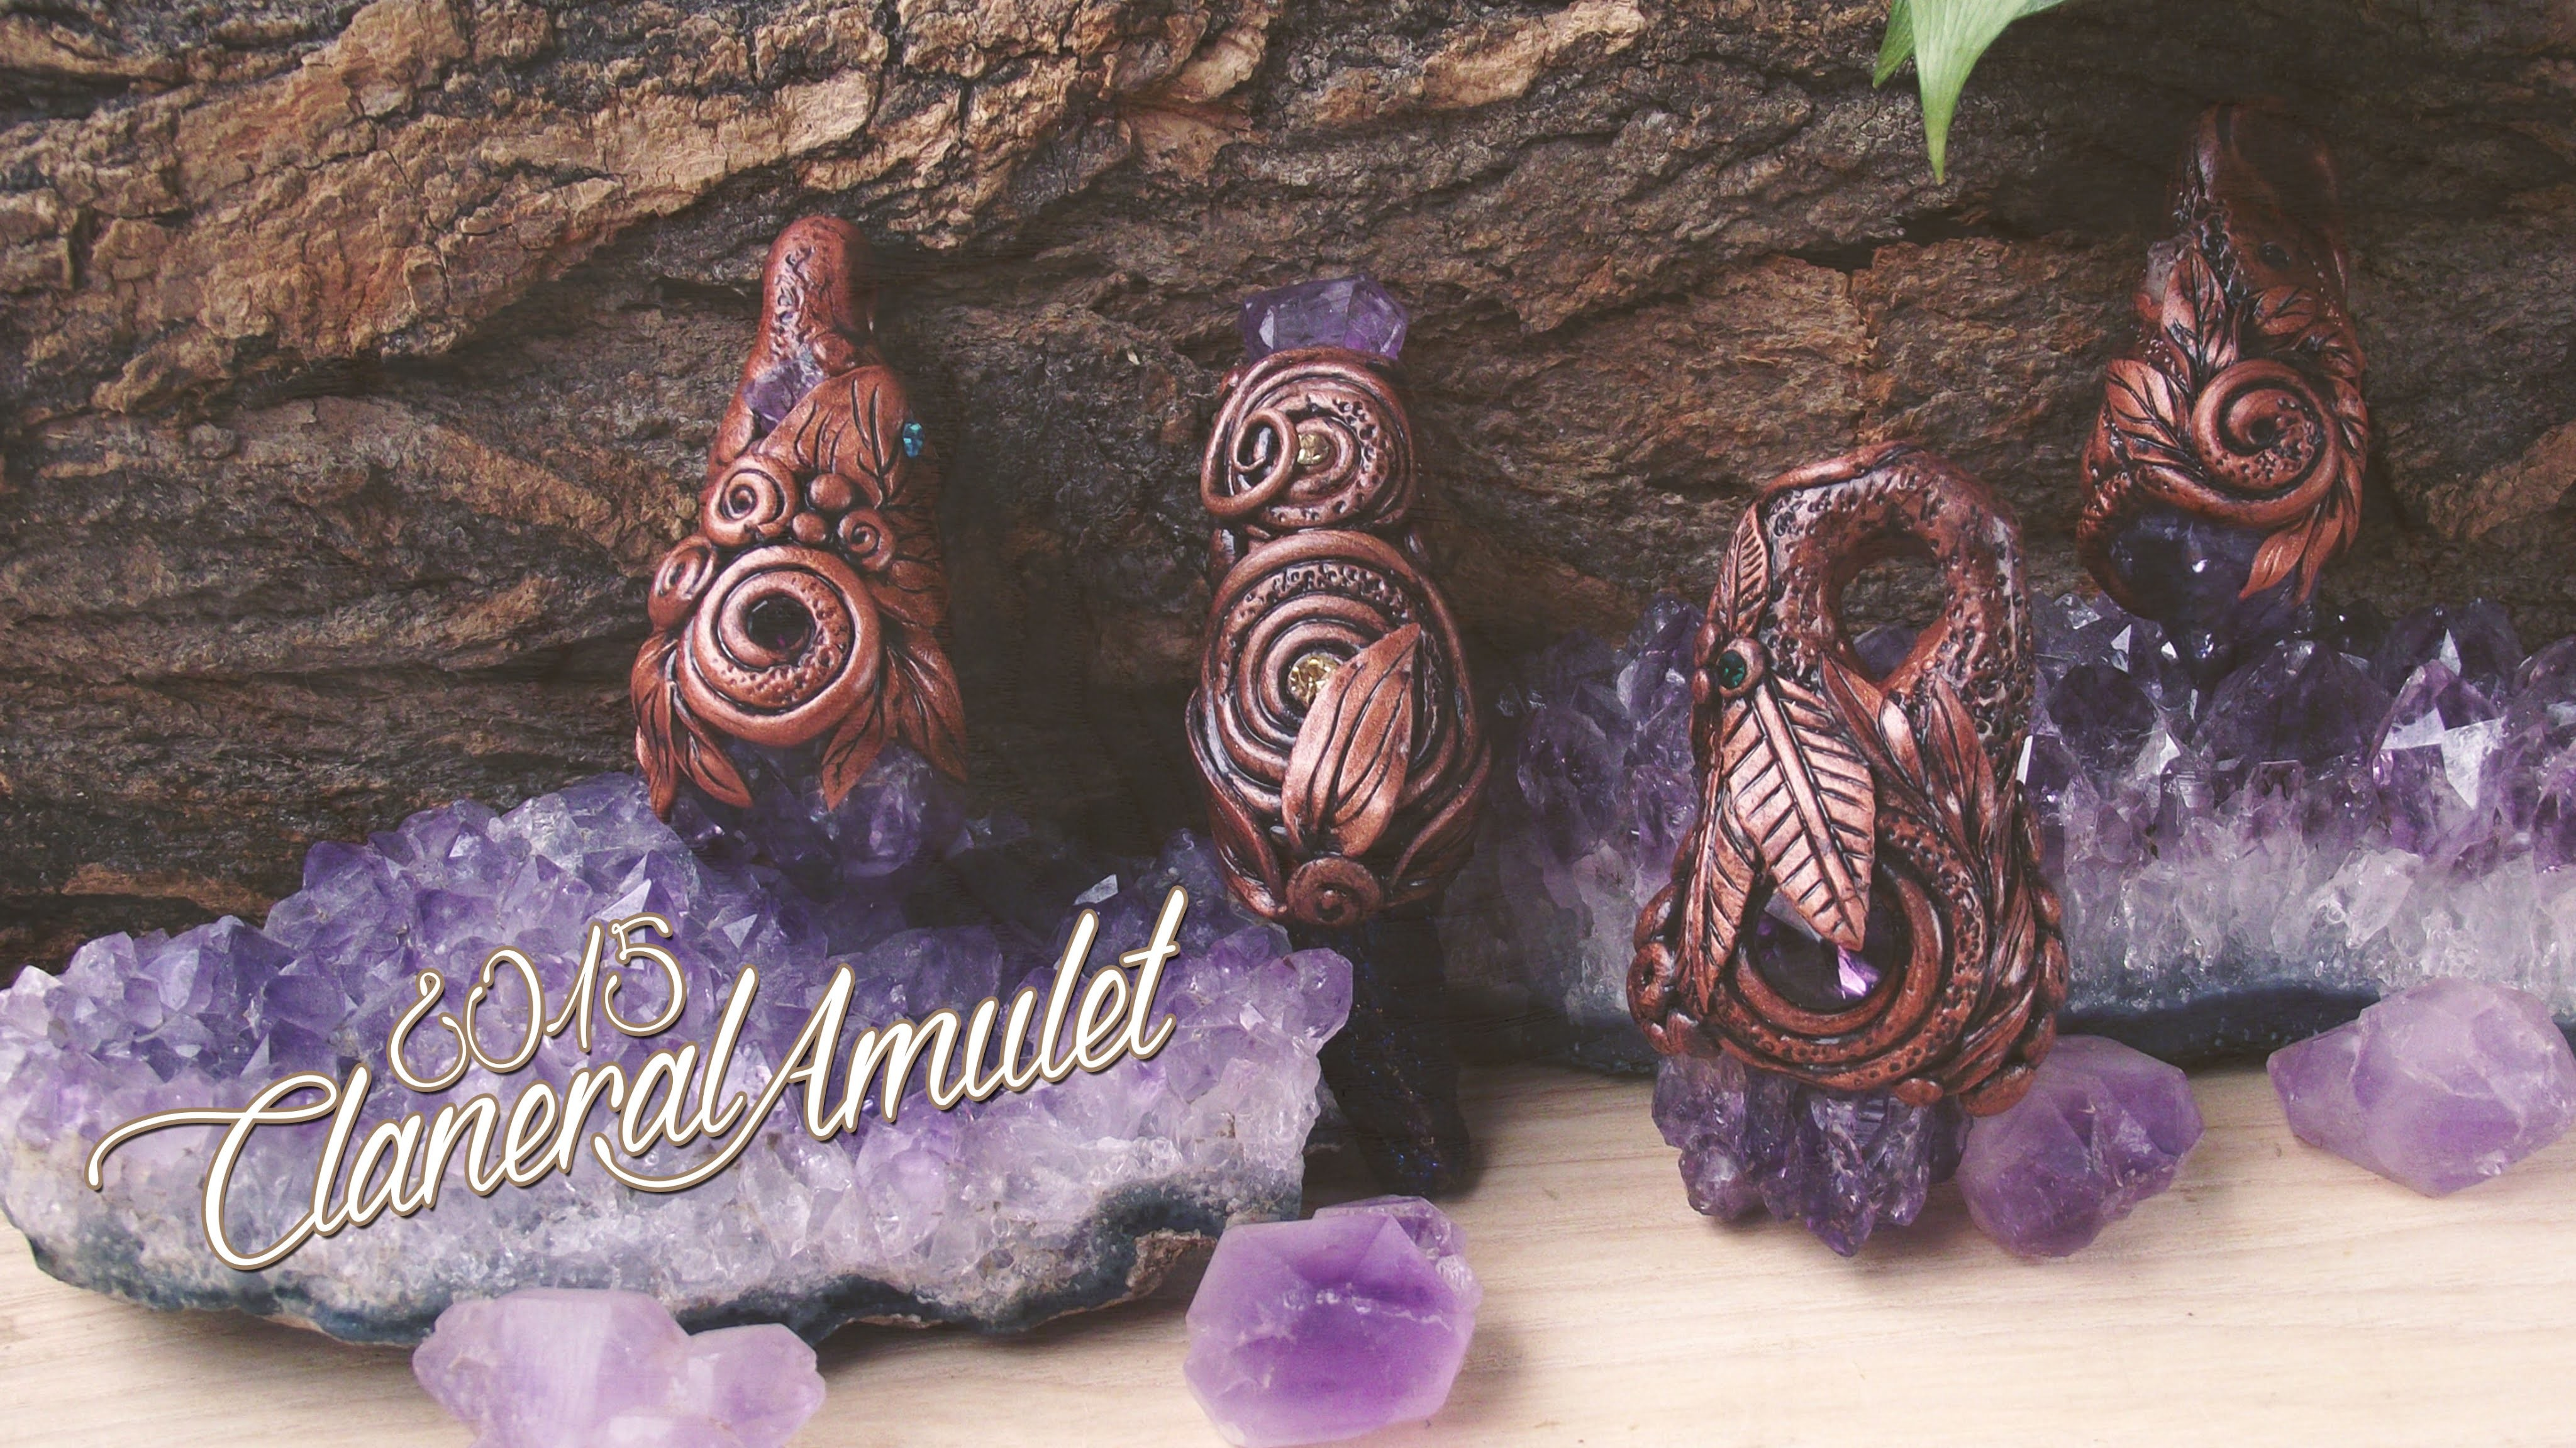 Polymer clay and mineral pendants 2015 by ClaneralAmulet